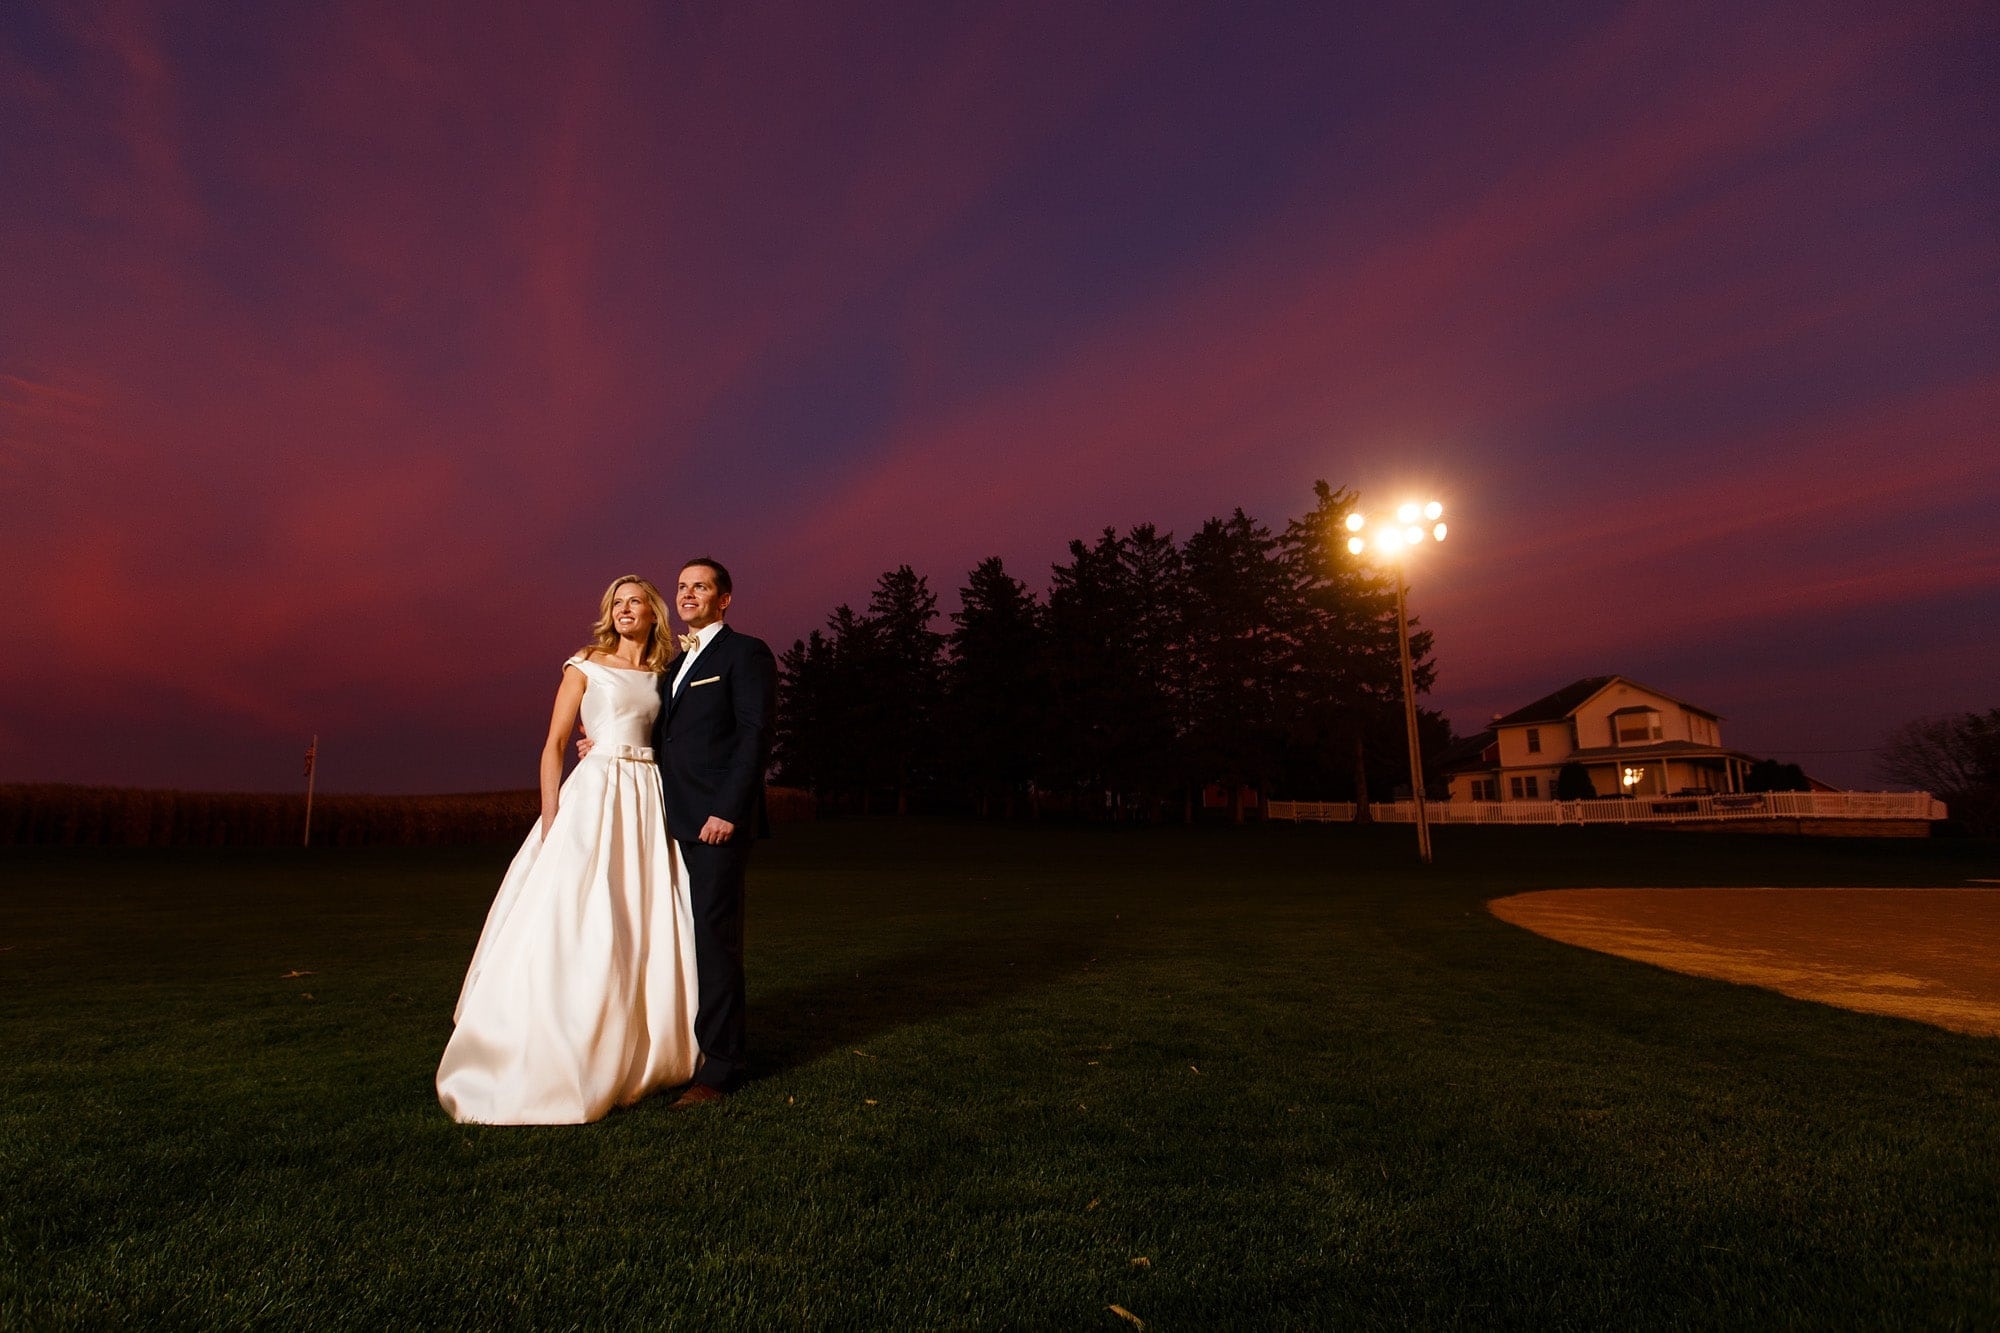 The sun sets as Shannon and David pose at the during their Field of Dreams wedding in Dyersville, Iowa